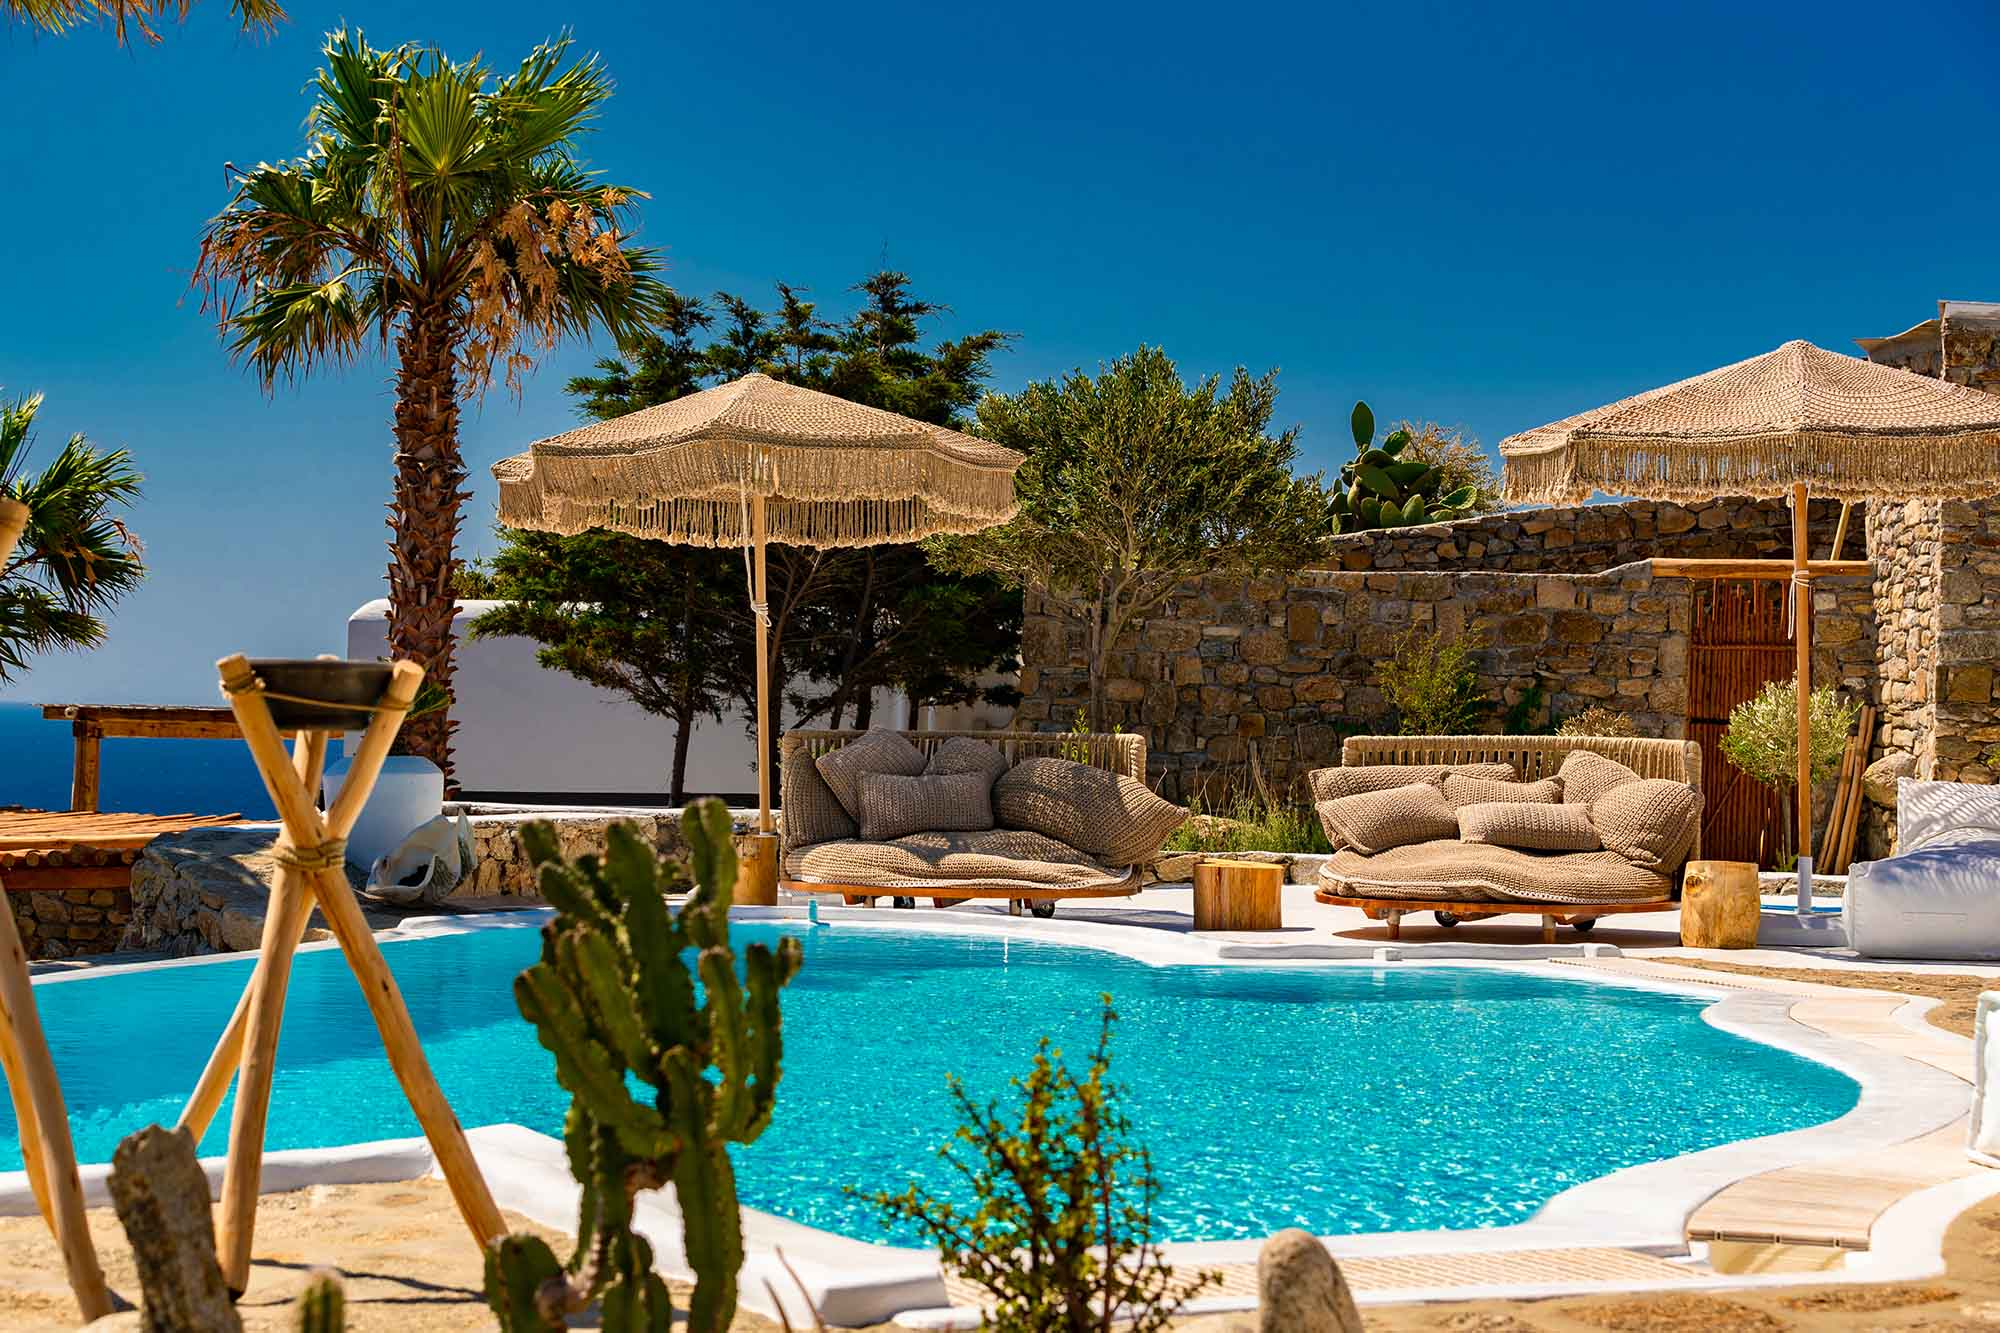 RENT A LUXURIOUS VILLA BY THE SEA IN MYKONOS - VILLA KARKOS - swimming pool, umbrella